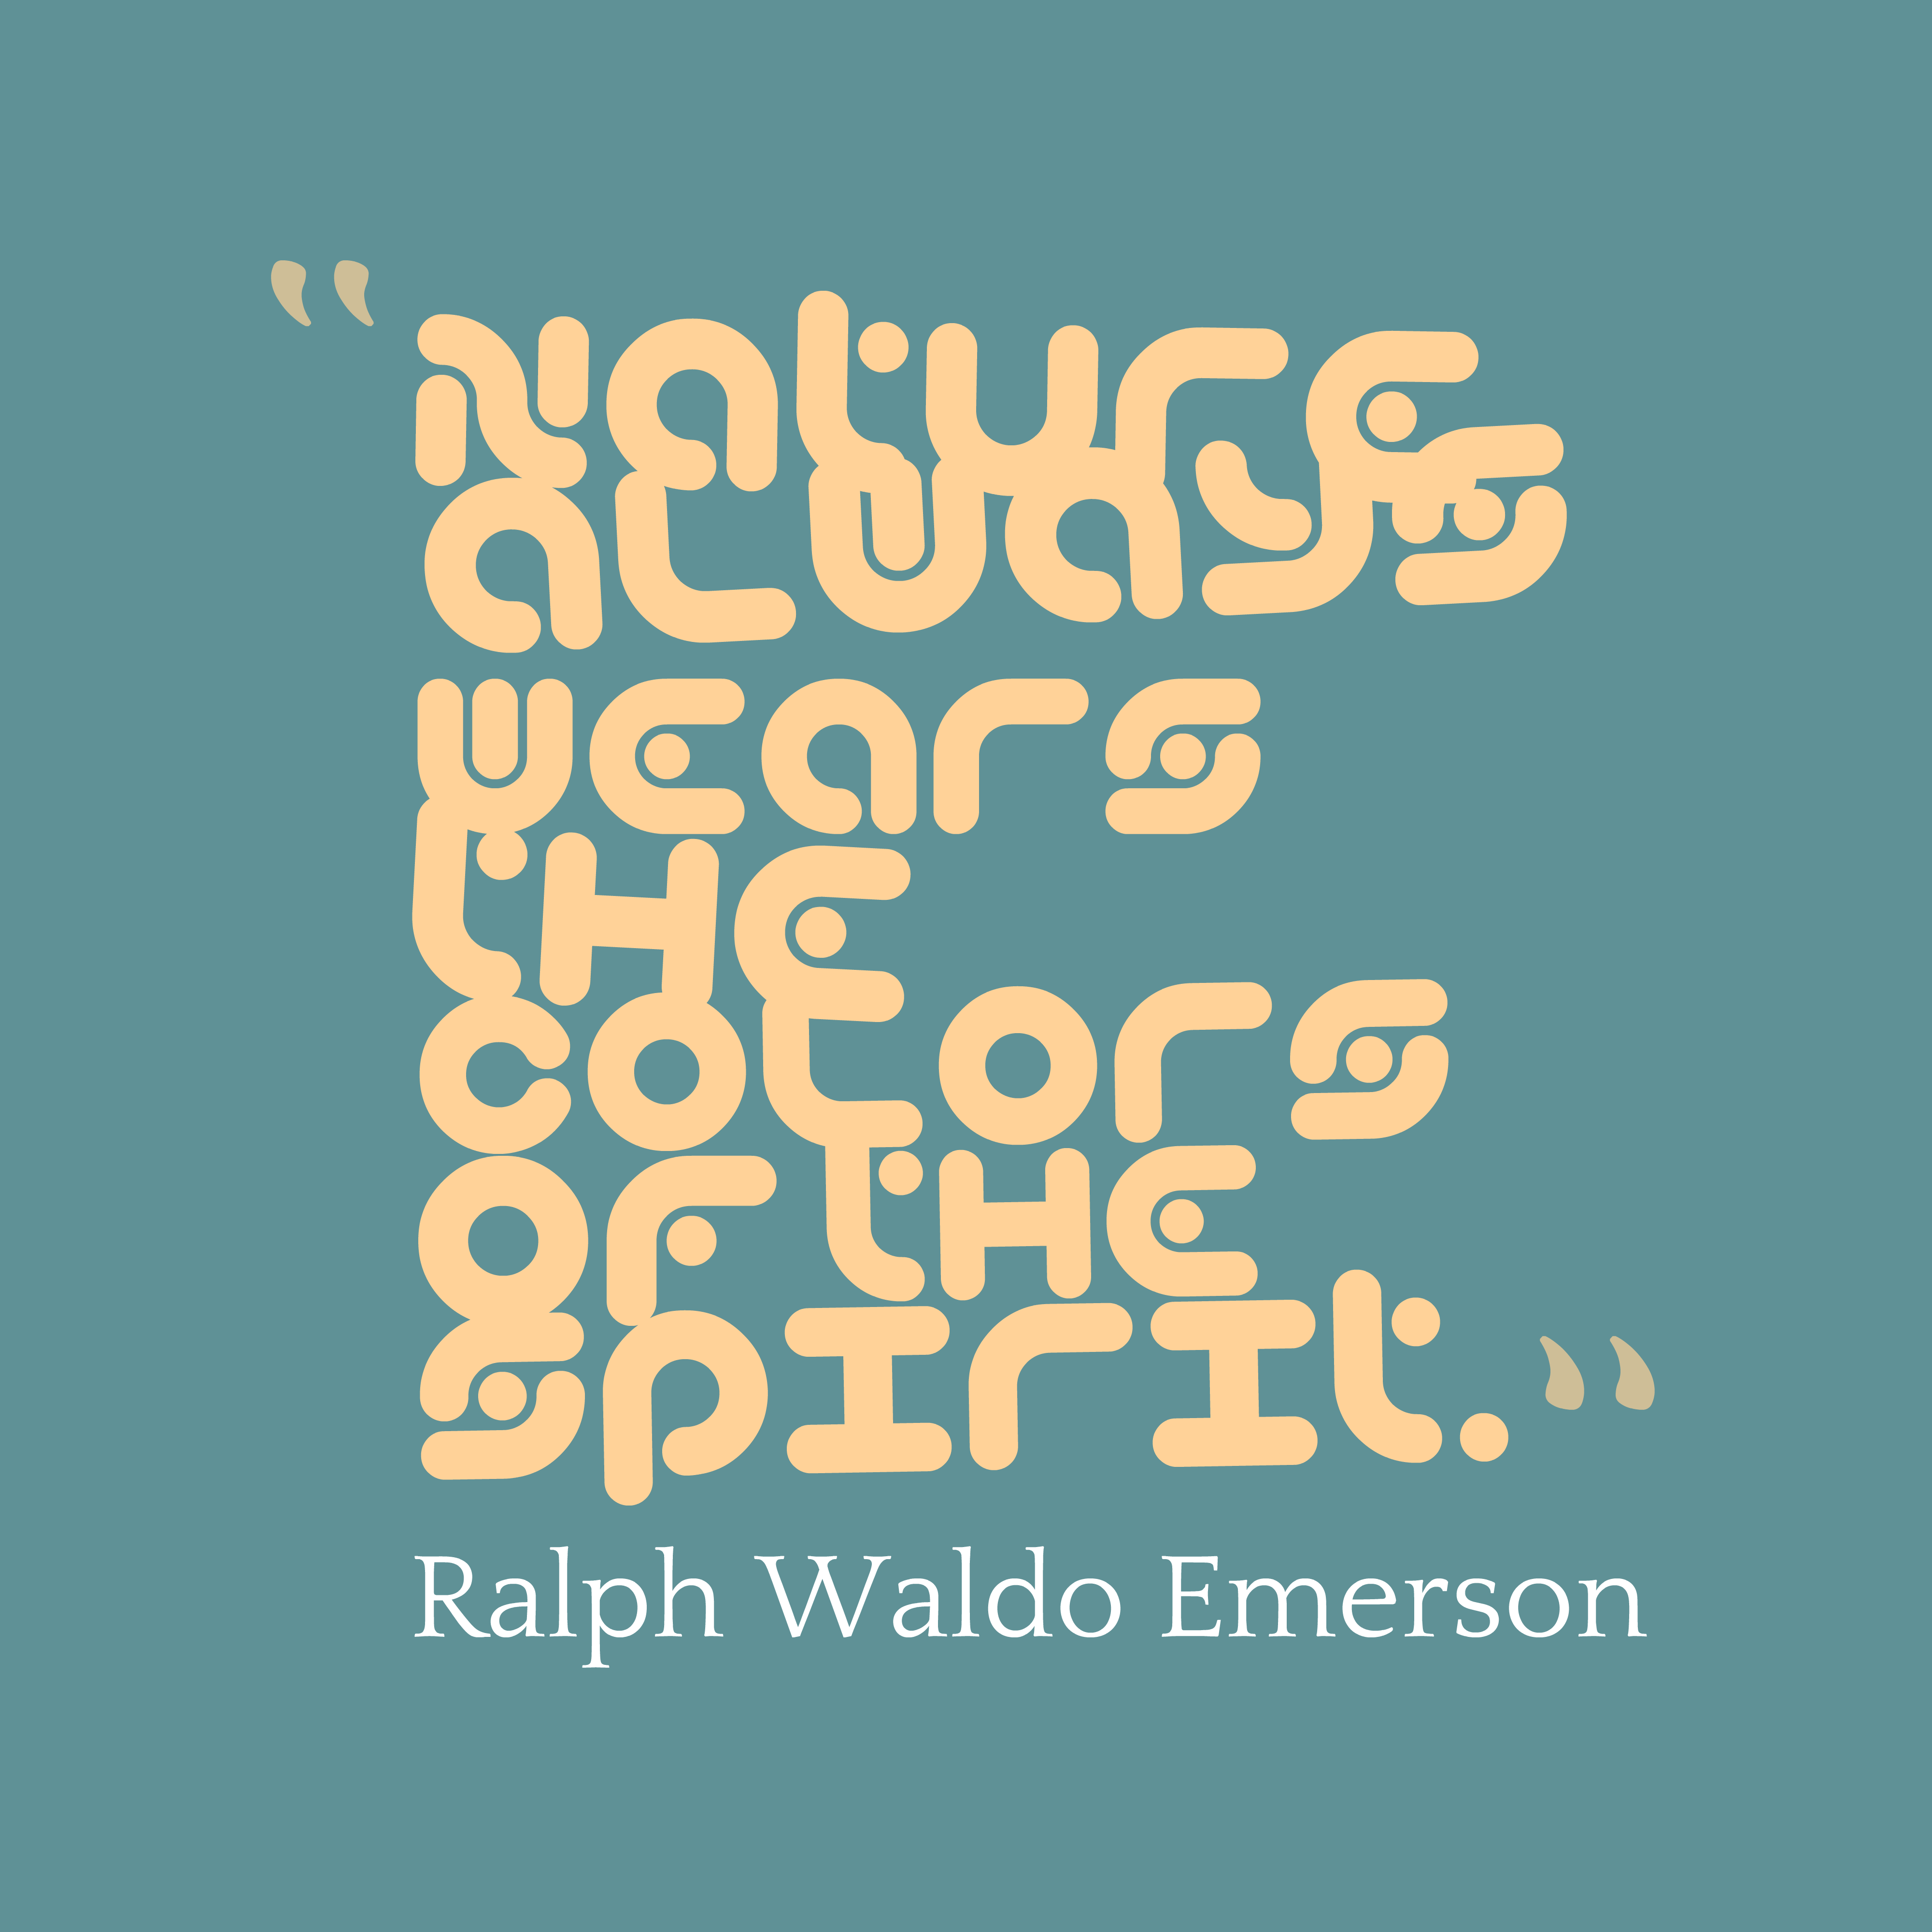 ralph waldo emersons essay nature In self-reliance, philosopher ralph waldo emerson argues that polite society has an adverse effect on one's personal growth self-sufficiency, he writes, gives one the freedom to discover one'strue self and attain true independence.